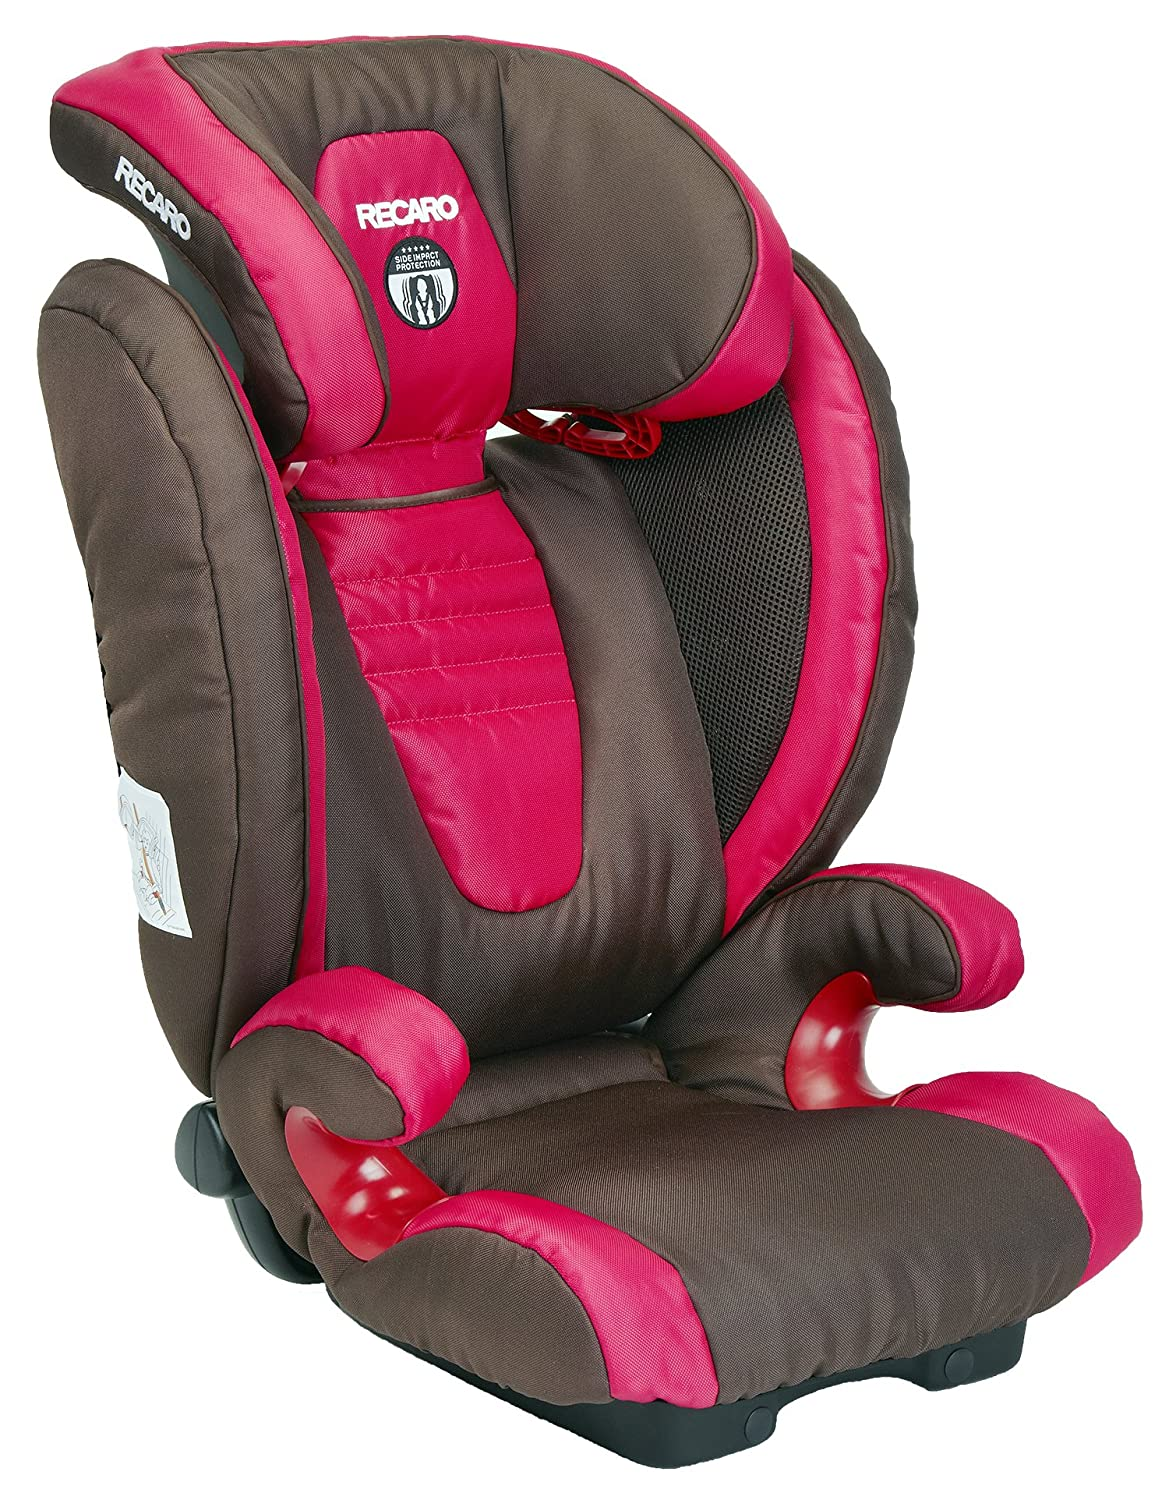 Amazon.com : RECARO ProBOOSTER High Back Booster Car Seat, Hanna (Discontinued by Manufacturer) : Child Safety Booster Car Seats : Baby